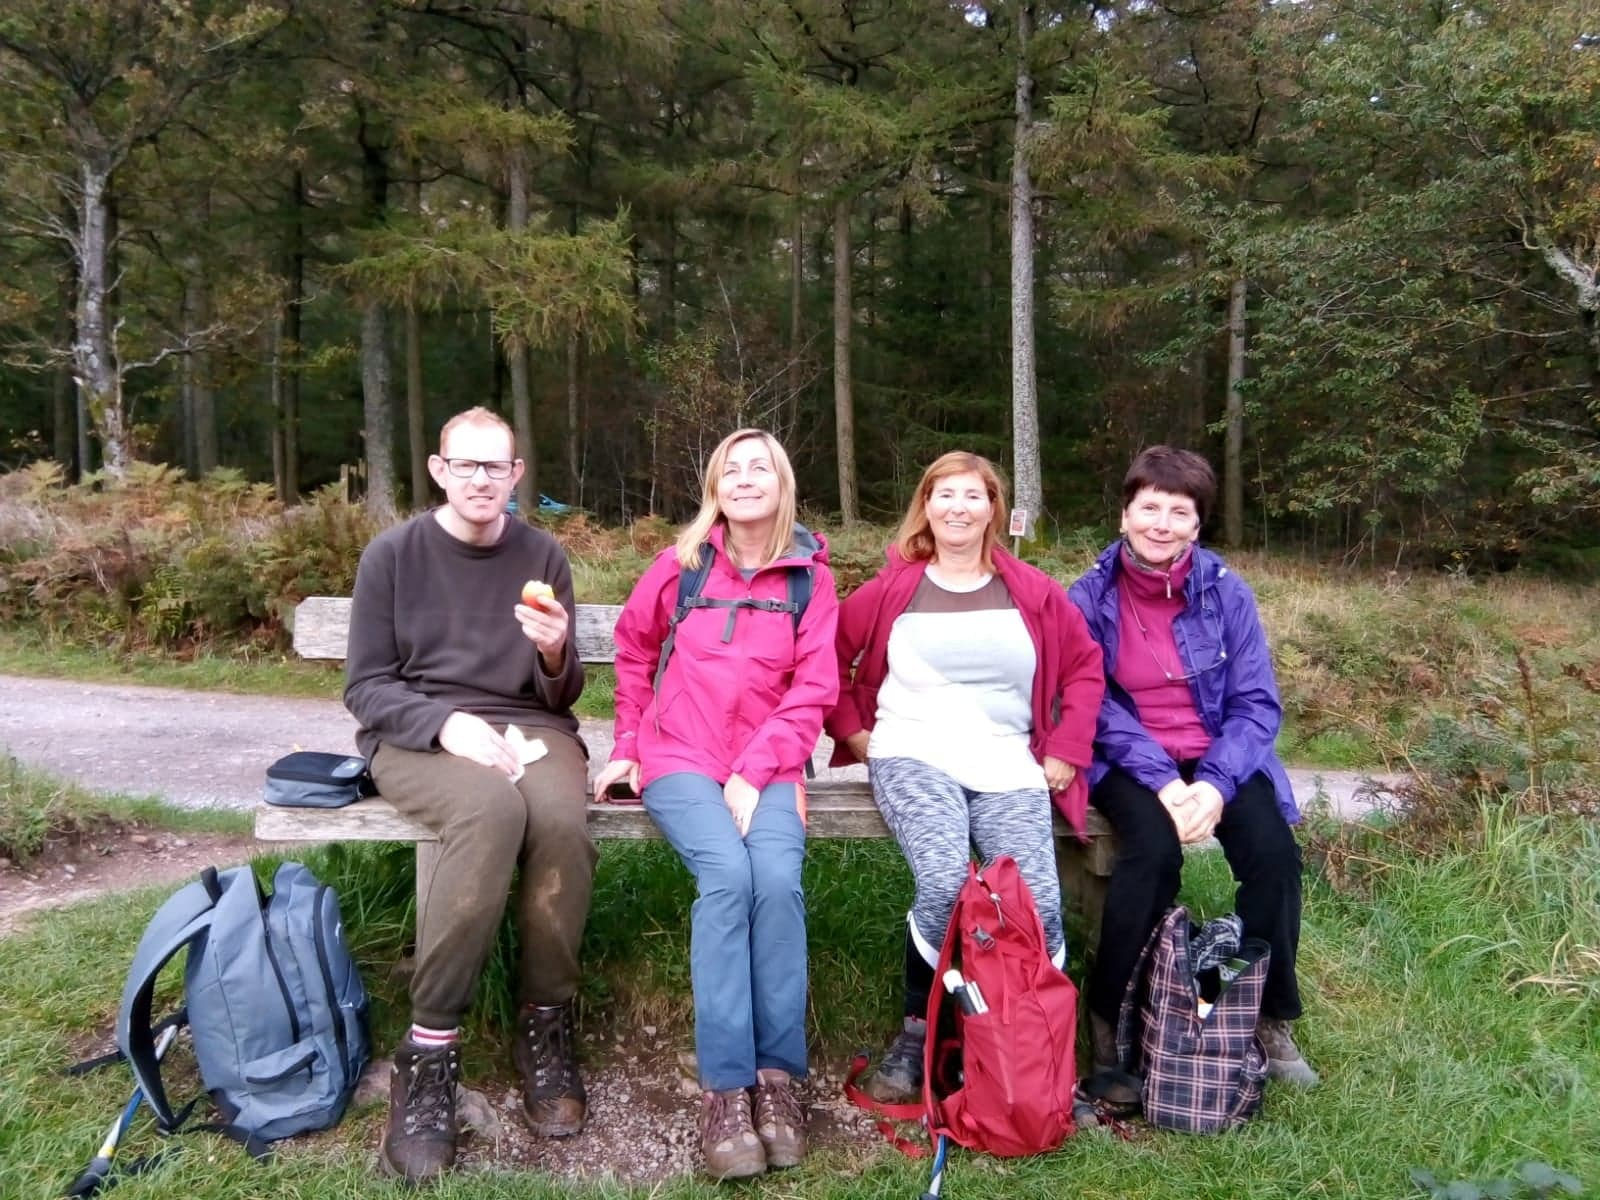 Four people sittong on a bench with woodland behind